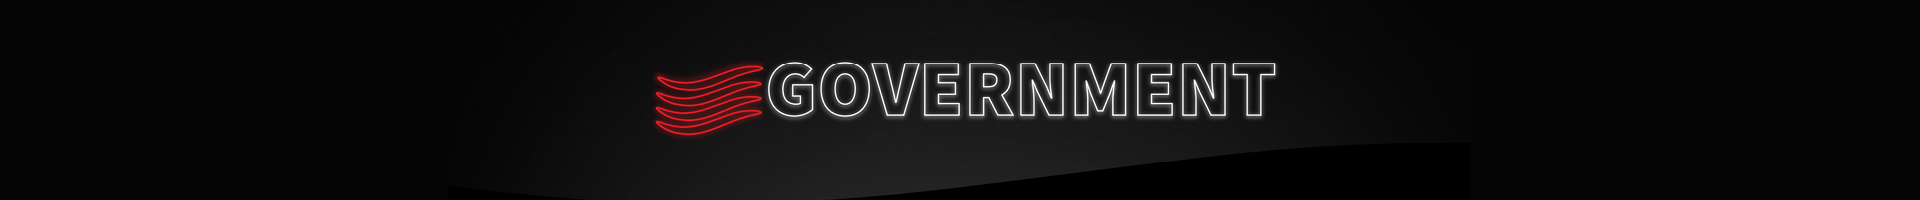 Government Banner